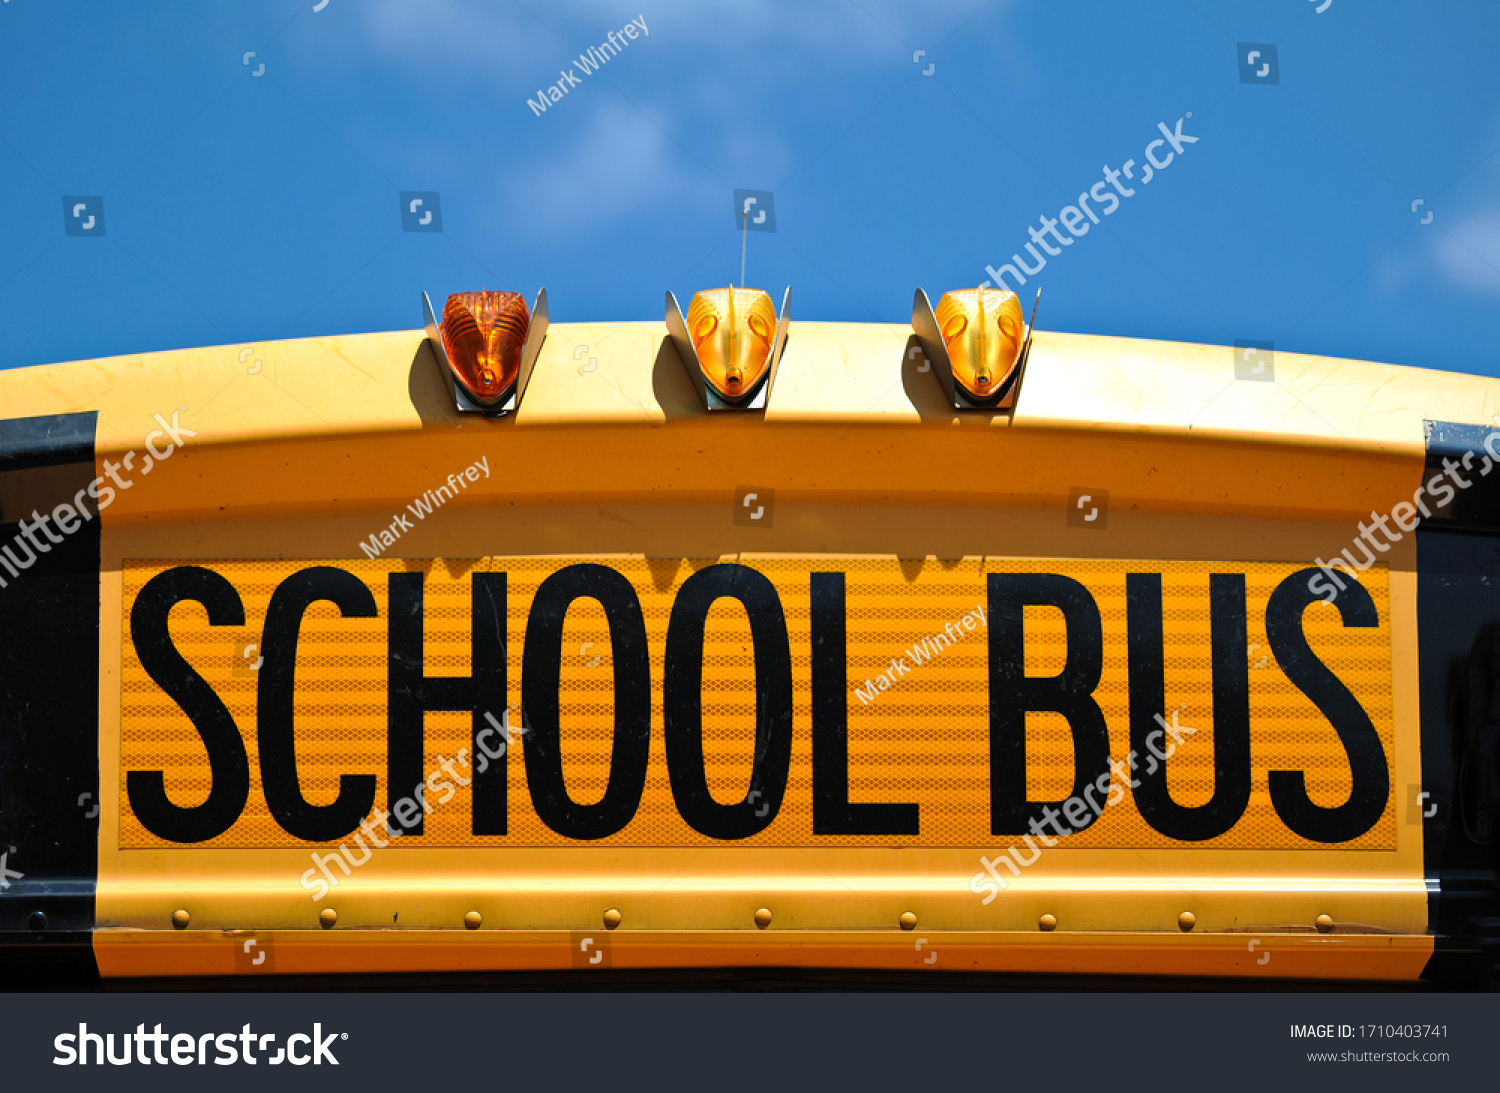 stock-photo-front-of-a-yellow-school-bus